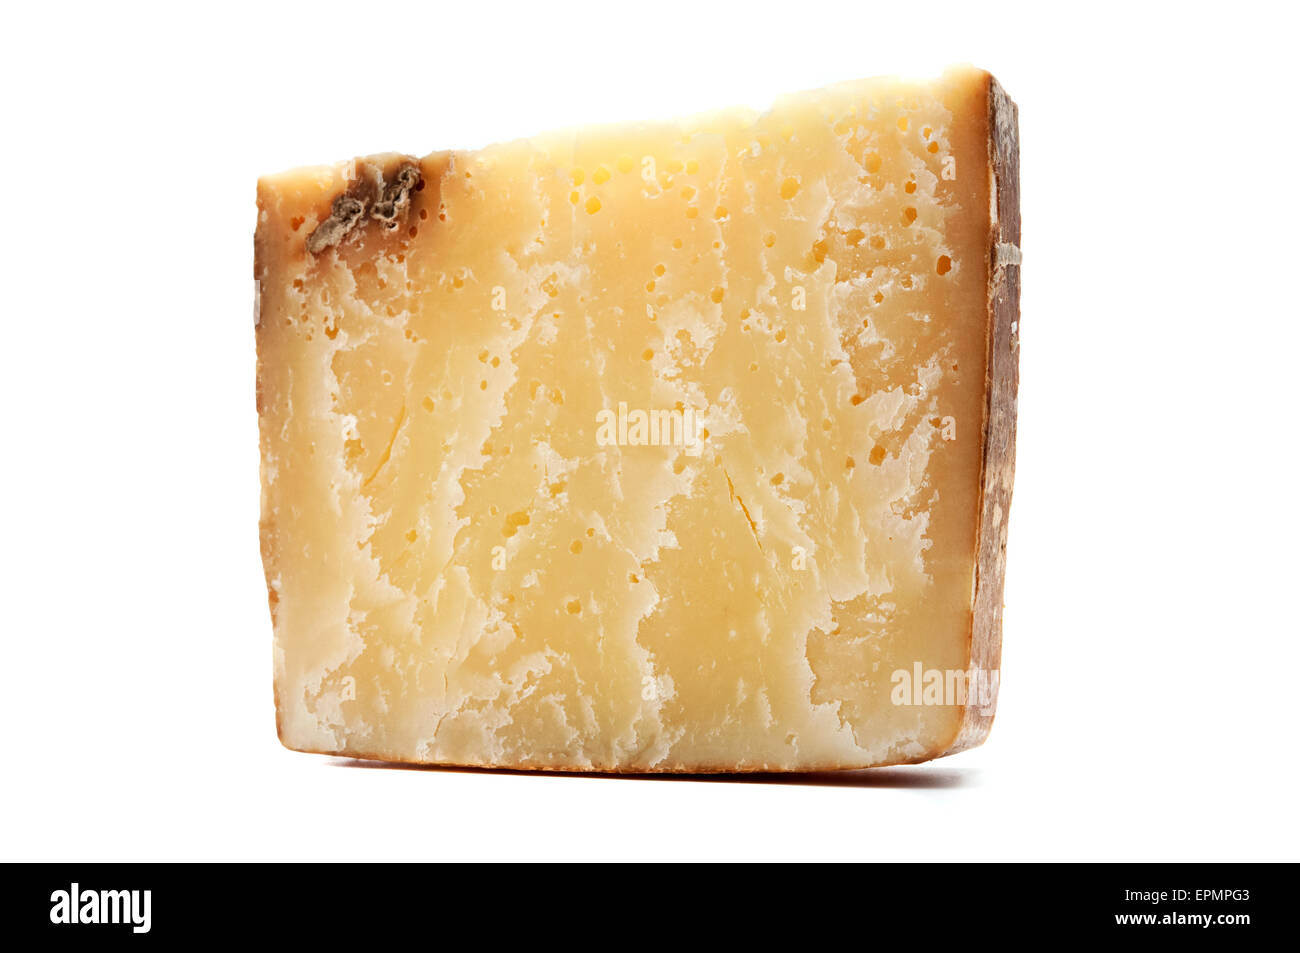 Bagoss cheese on a white background - Stock Image